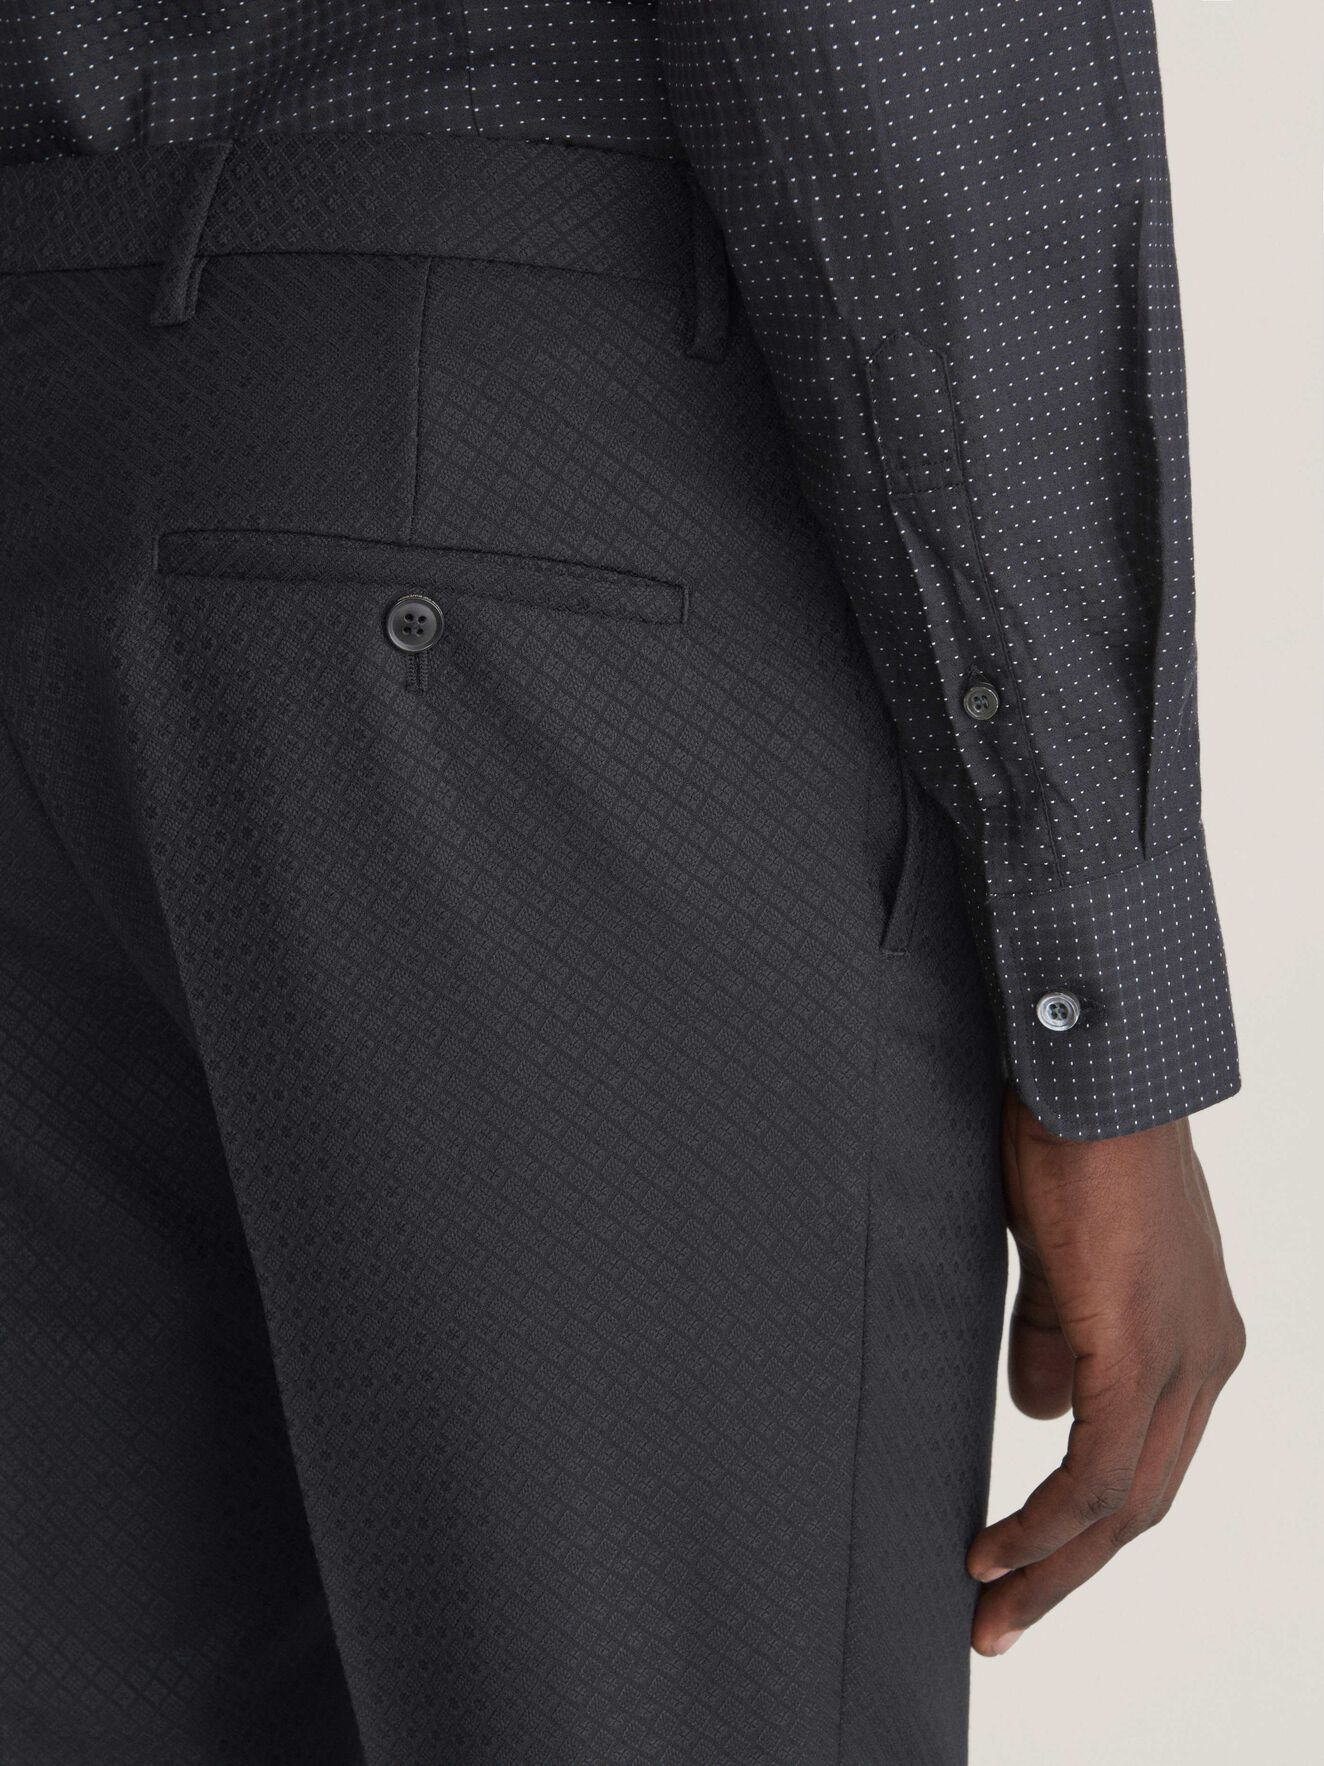 Tarpino Trousers in Black from Tiger of Sweden